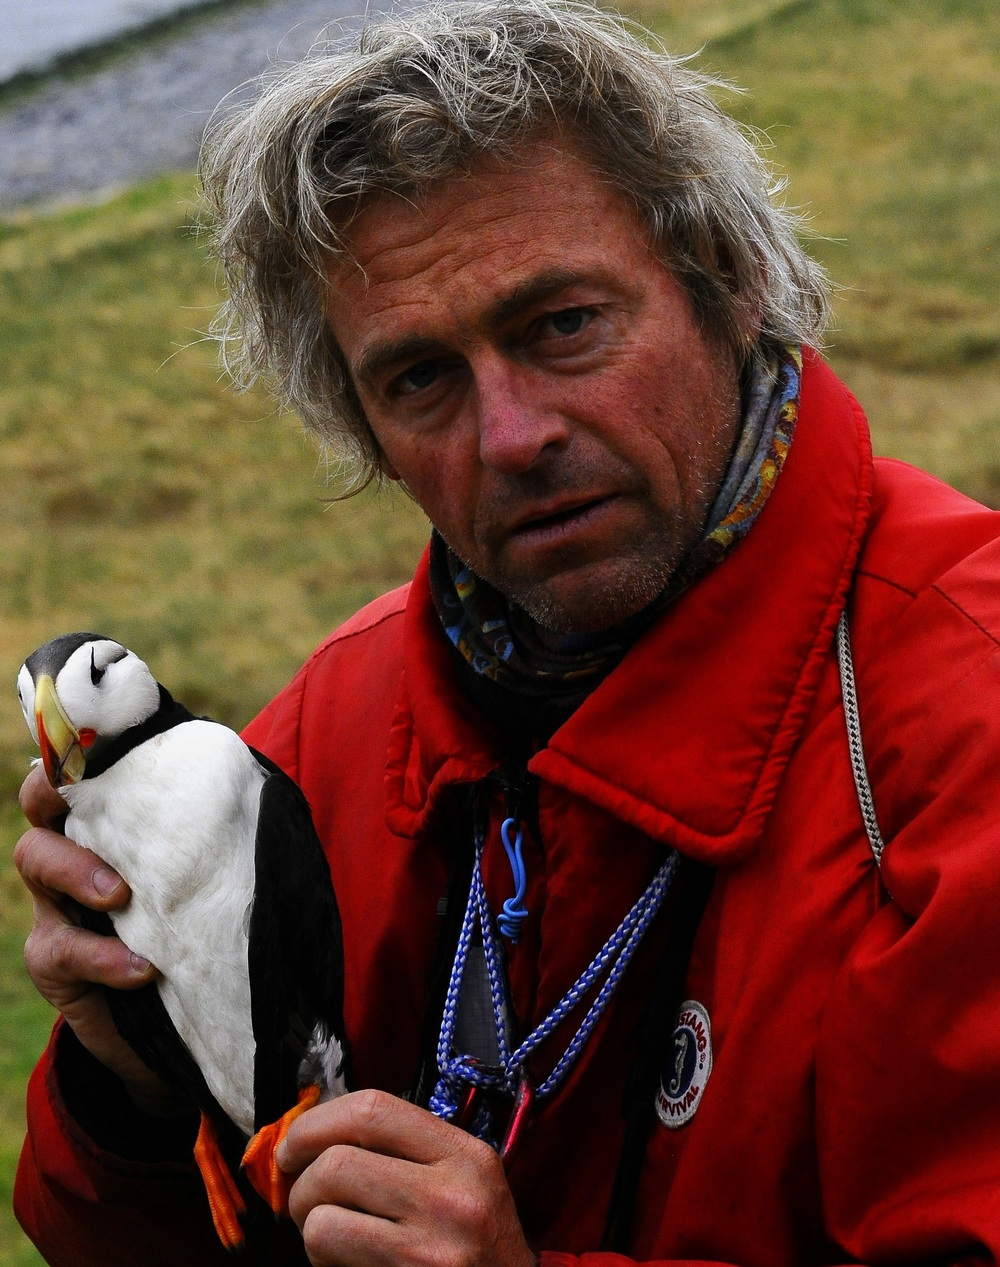 Fabrice Genevois  studied ornithology at L'Ecole Pratique des Hautes Etudes (Paris) and did most of his research on the behavioural ecology of subantarcic petrels in the context of sexual selection.  He is also involved in field studies with French Museum of Natural History and also works as a lecturer on expedition ships in the polar regions.